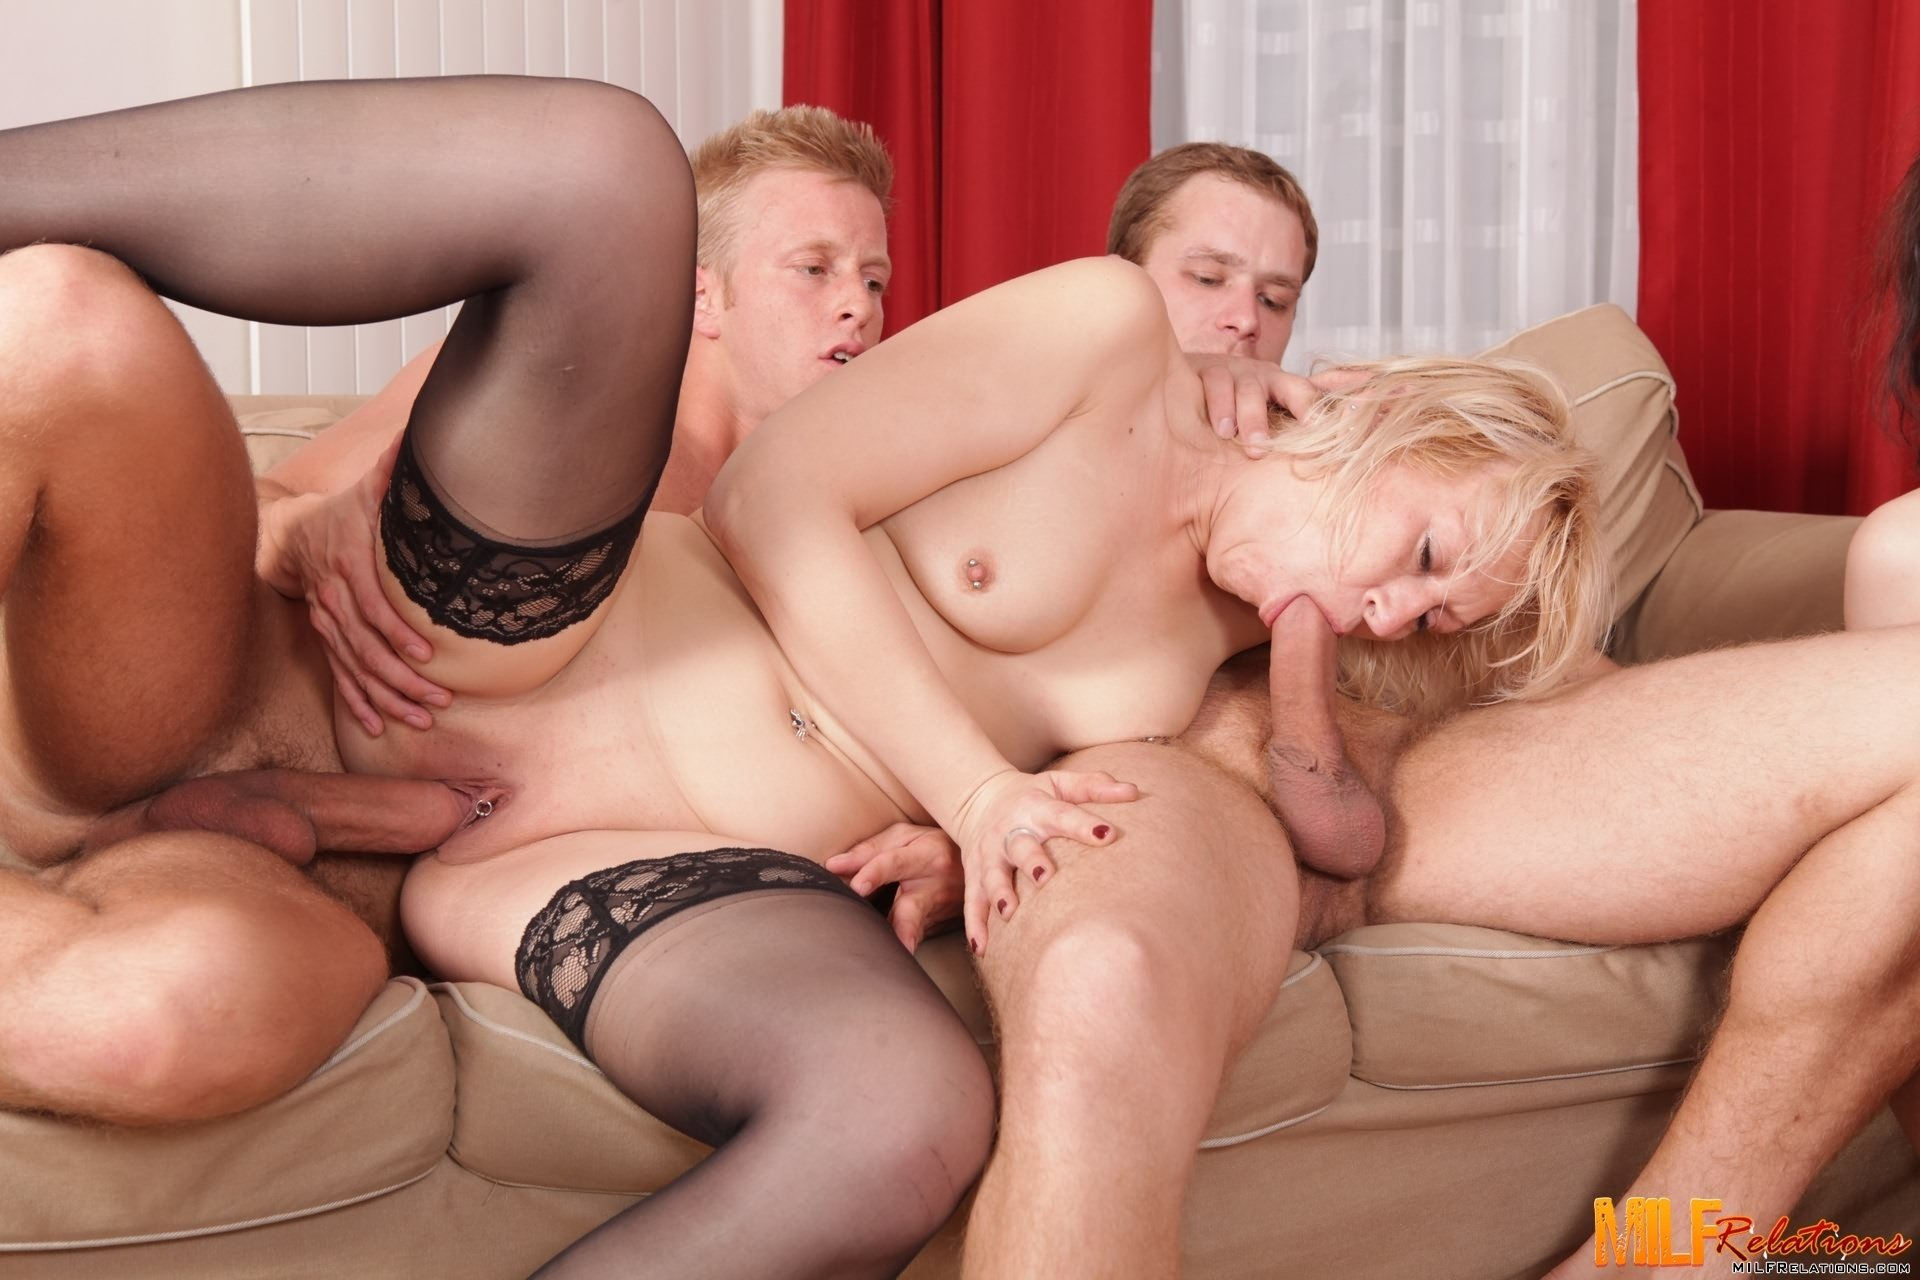 Group sex my blond milf sexwife